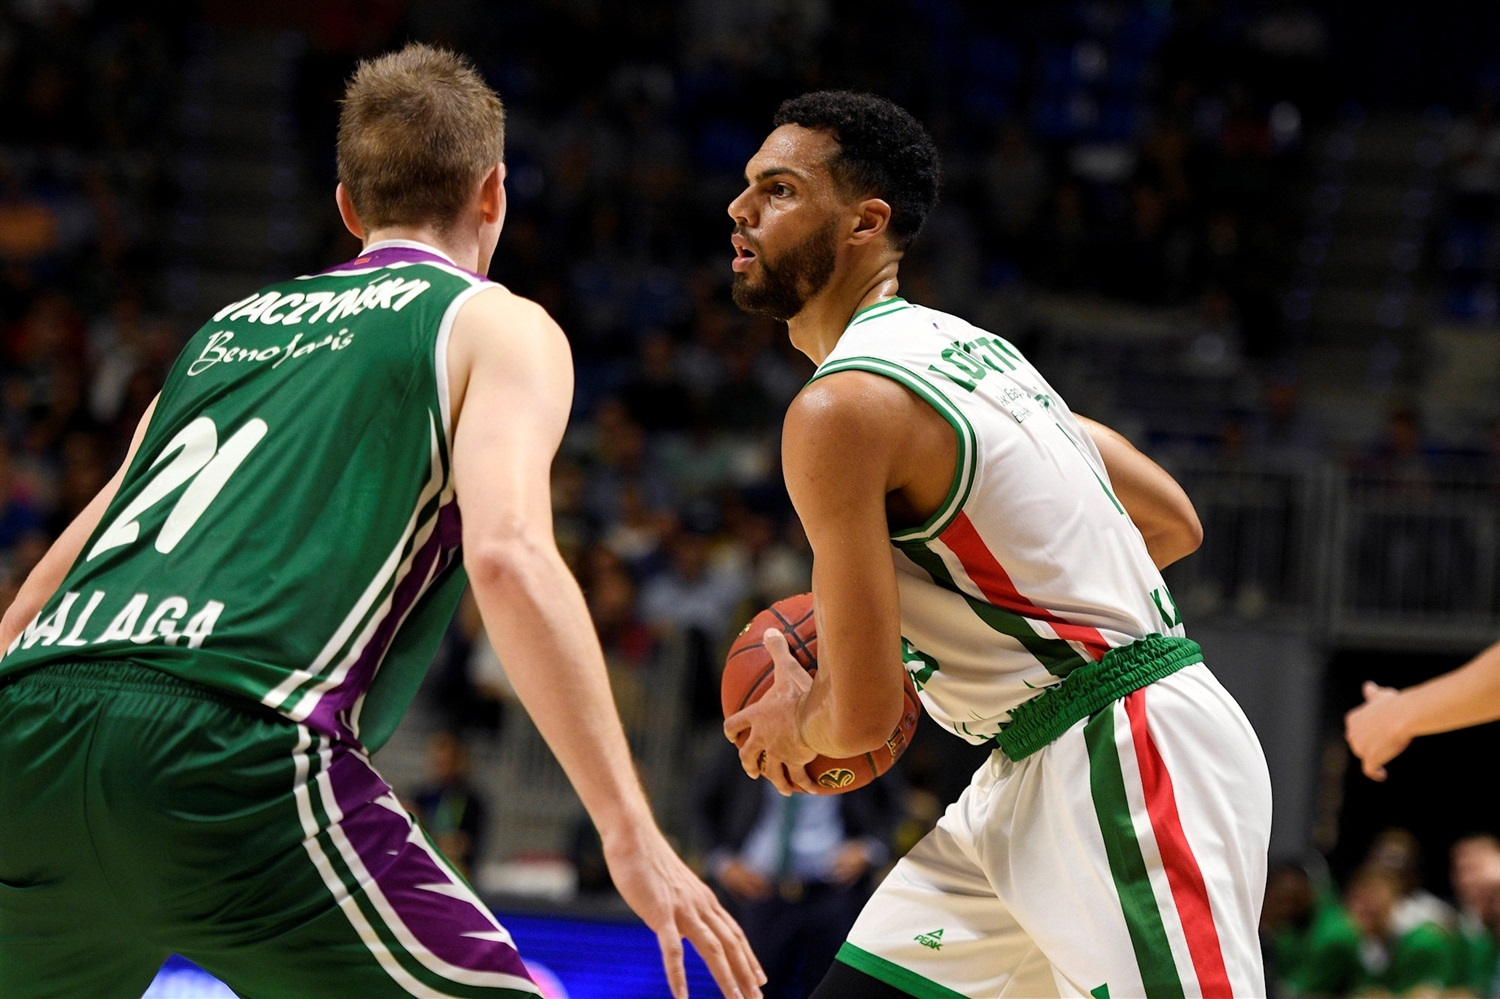 Trent Lockett - UNICS Kazan (photo Unicaja - Mariano Pozo) - EC18